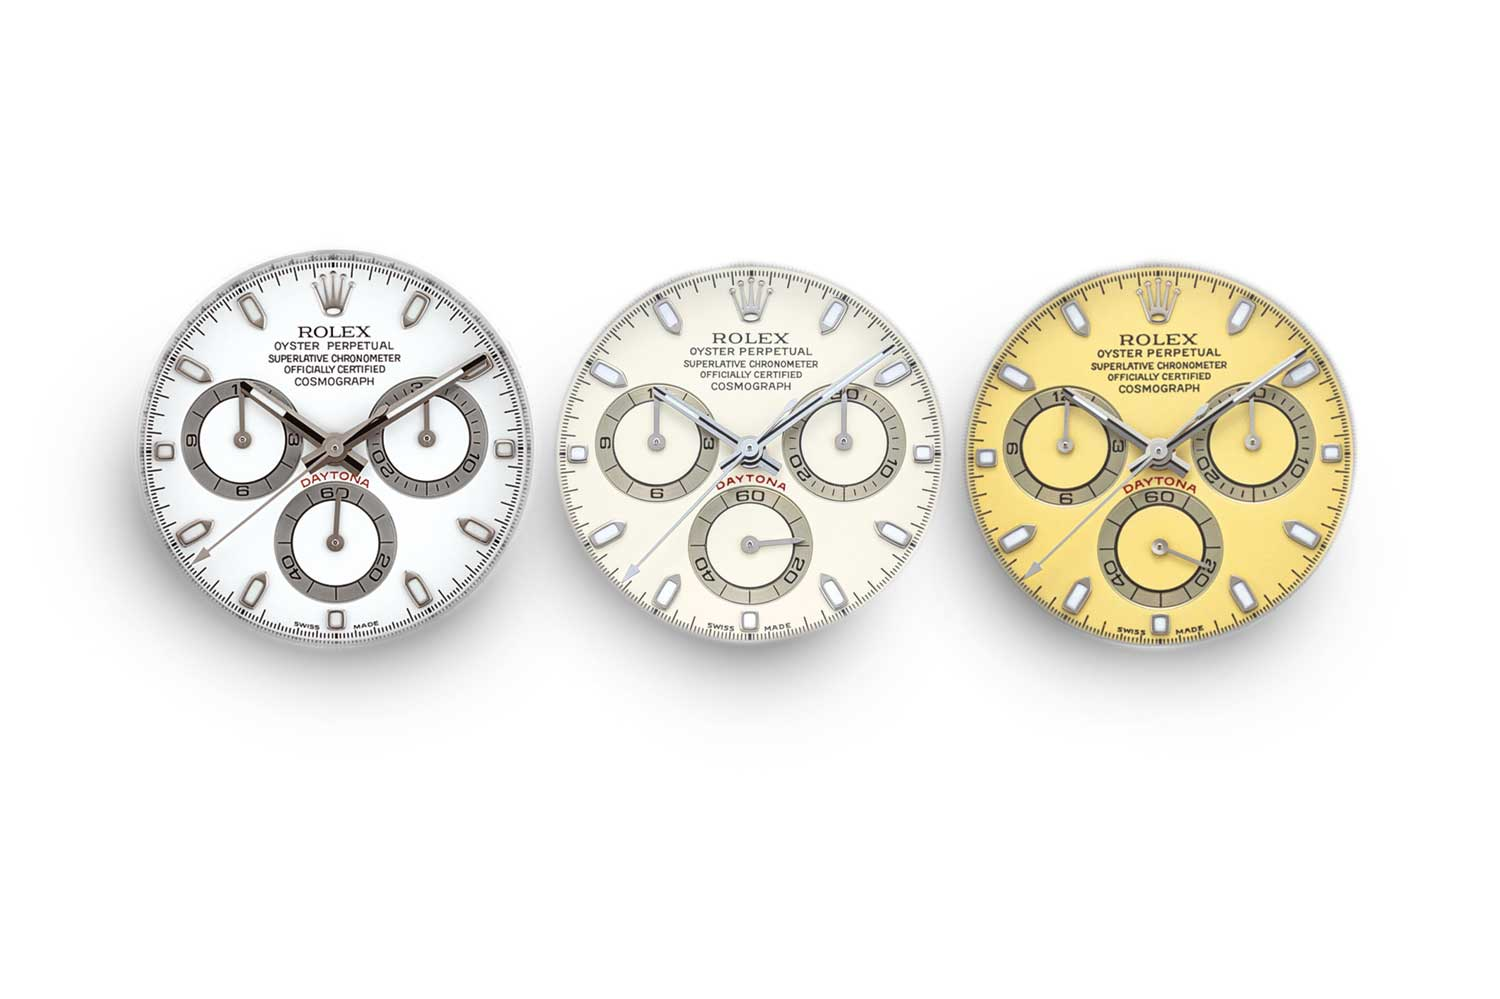 (L-R) Lot 2230 is a late Z series ref. 116520 showing no change in color, lot 2229 is a P series ref. 116520 from 2000 showing a delicate cream coloration on the dial and lastly lot 2235 is as well a P series ref. 116520 from 2000, however, with a much more pronounced yellow coloration on the dial